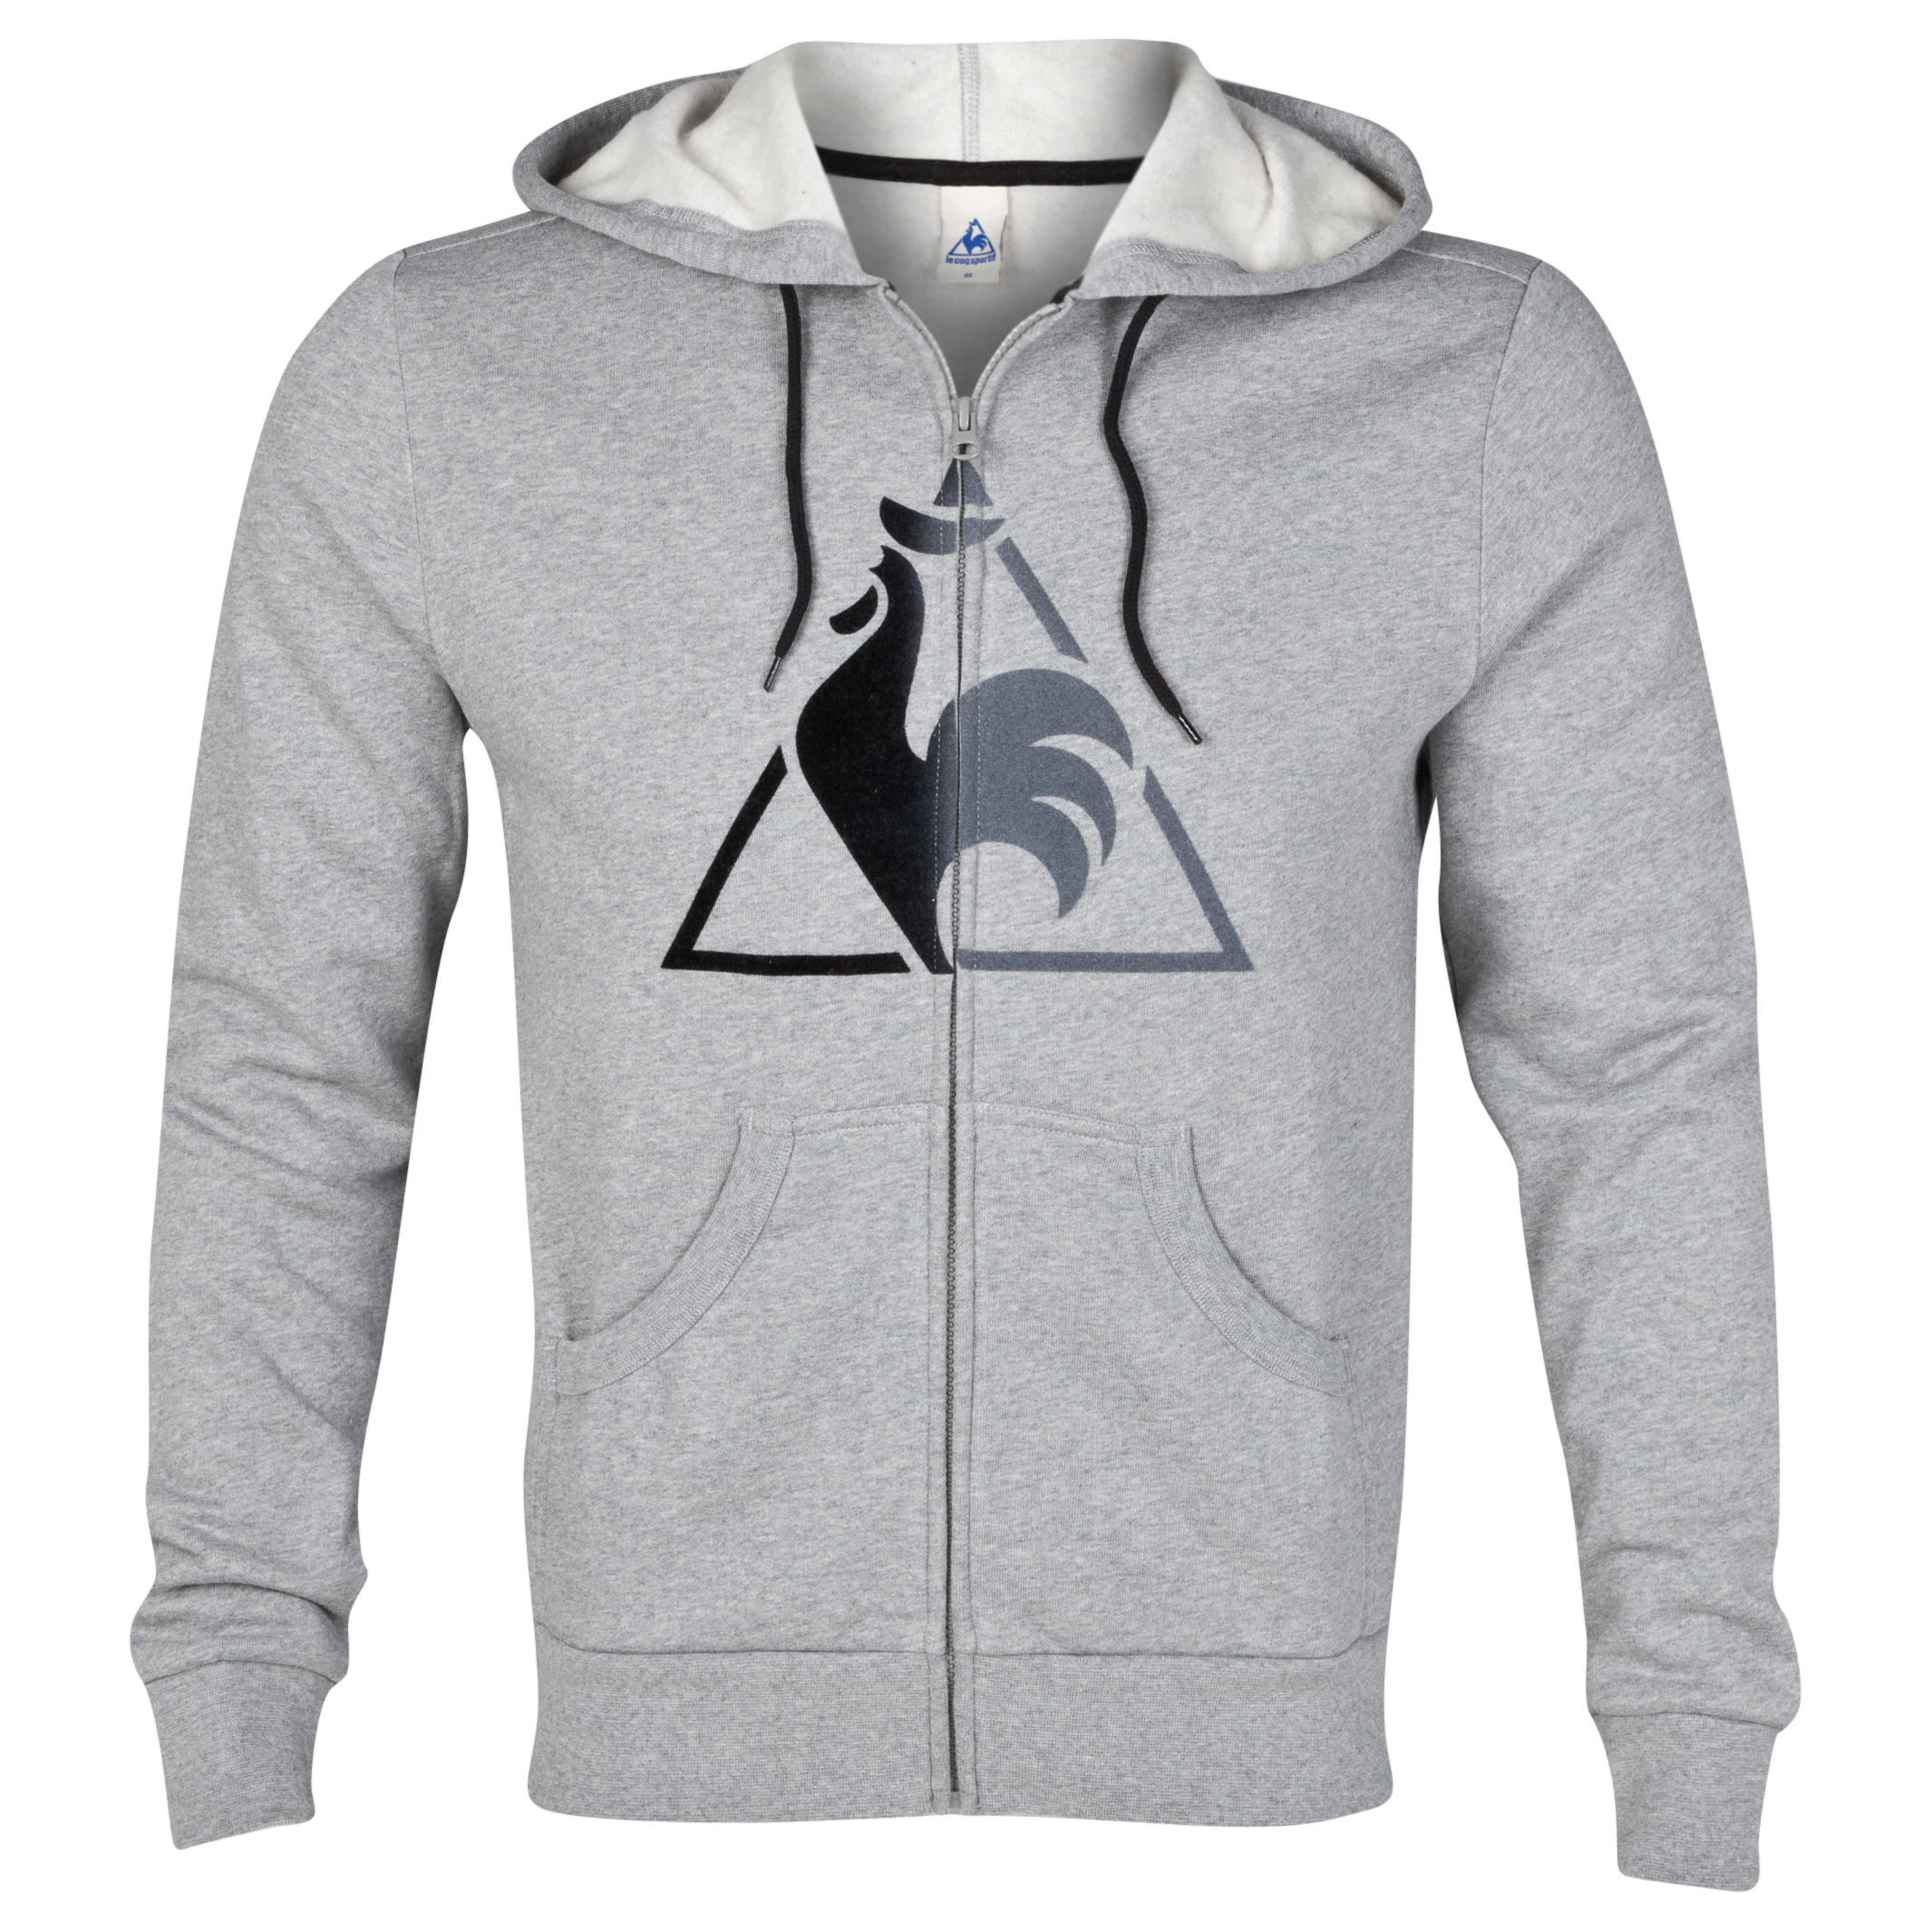 Le Coq Sportif Chronic Full Zip Hooded Sweatshirt - Light Heather Grey